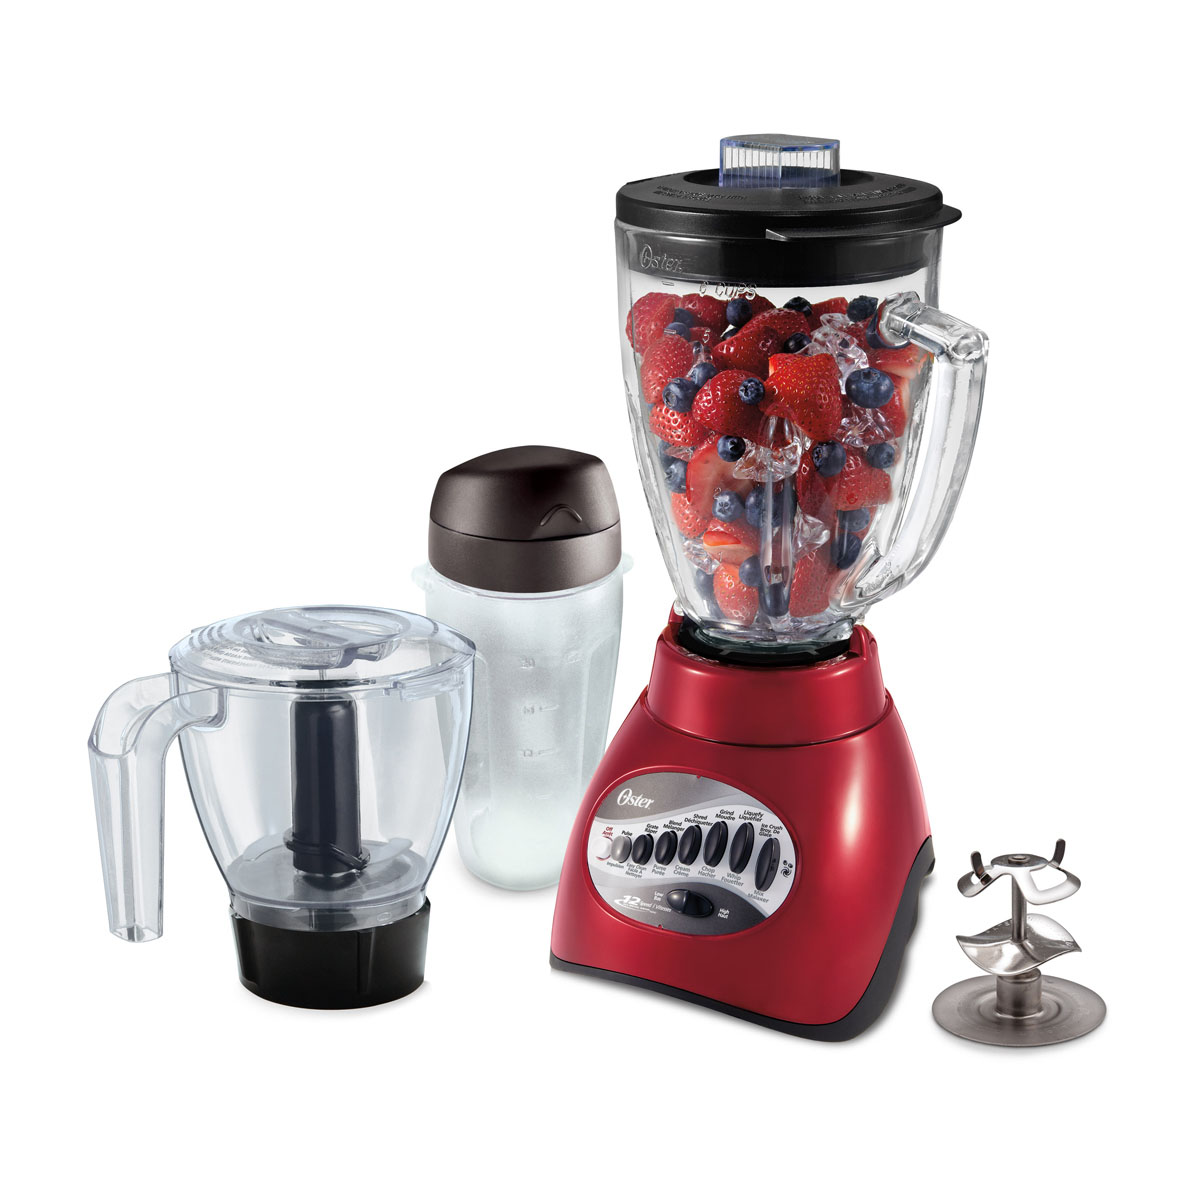 oster 12 speed blender 6844 b33 parts oster canada. Black Bedroom Furniture Sets. Home Design Ideas